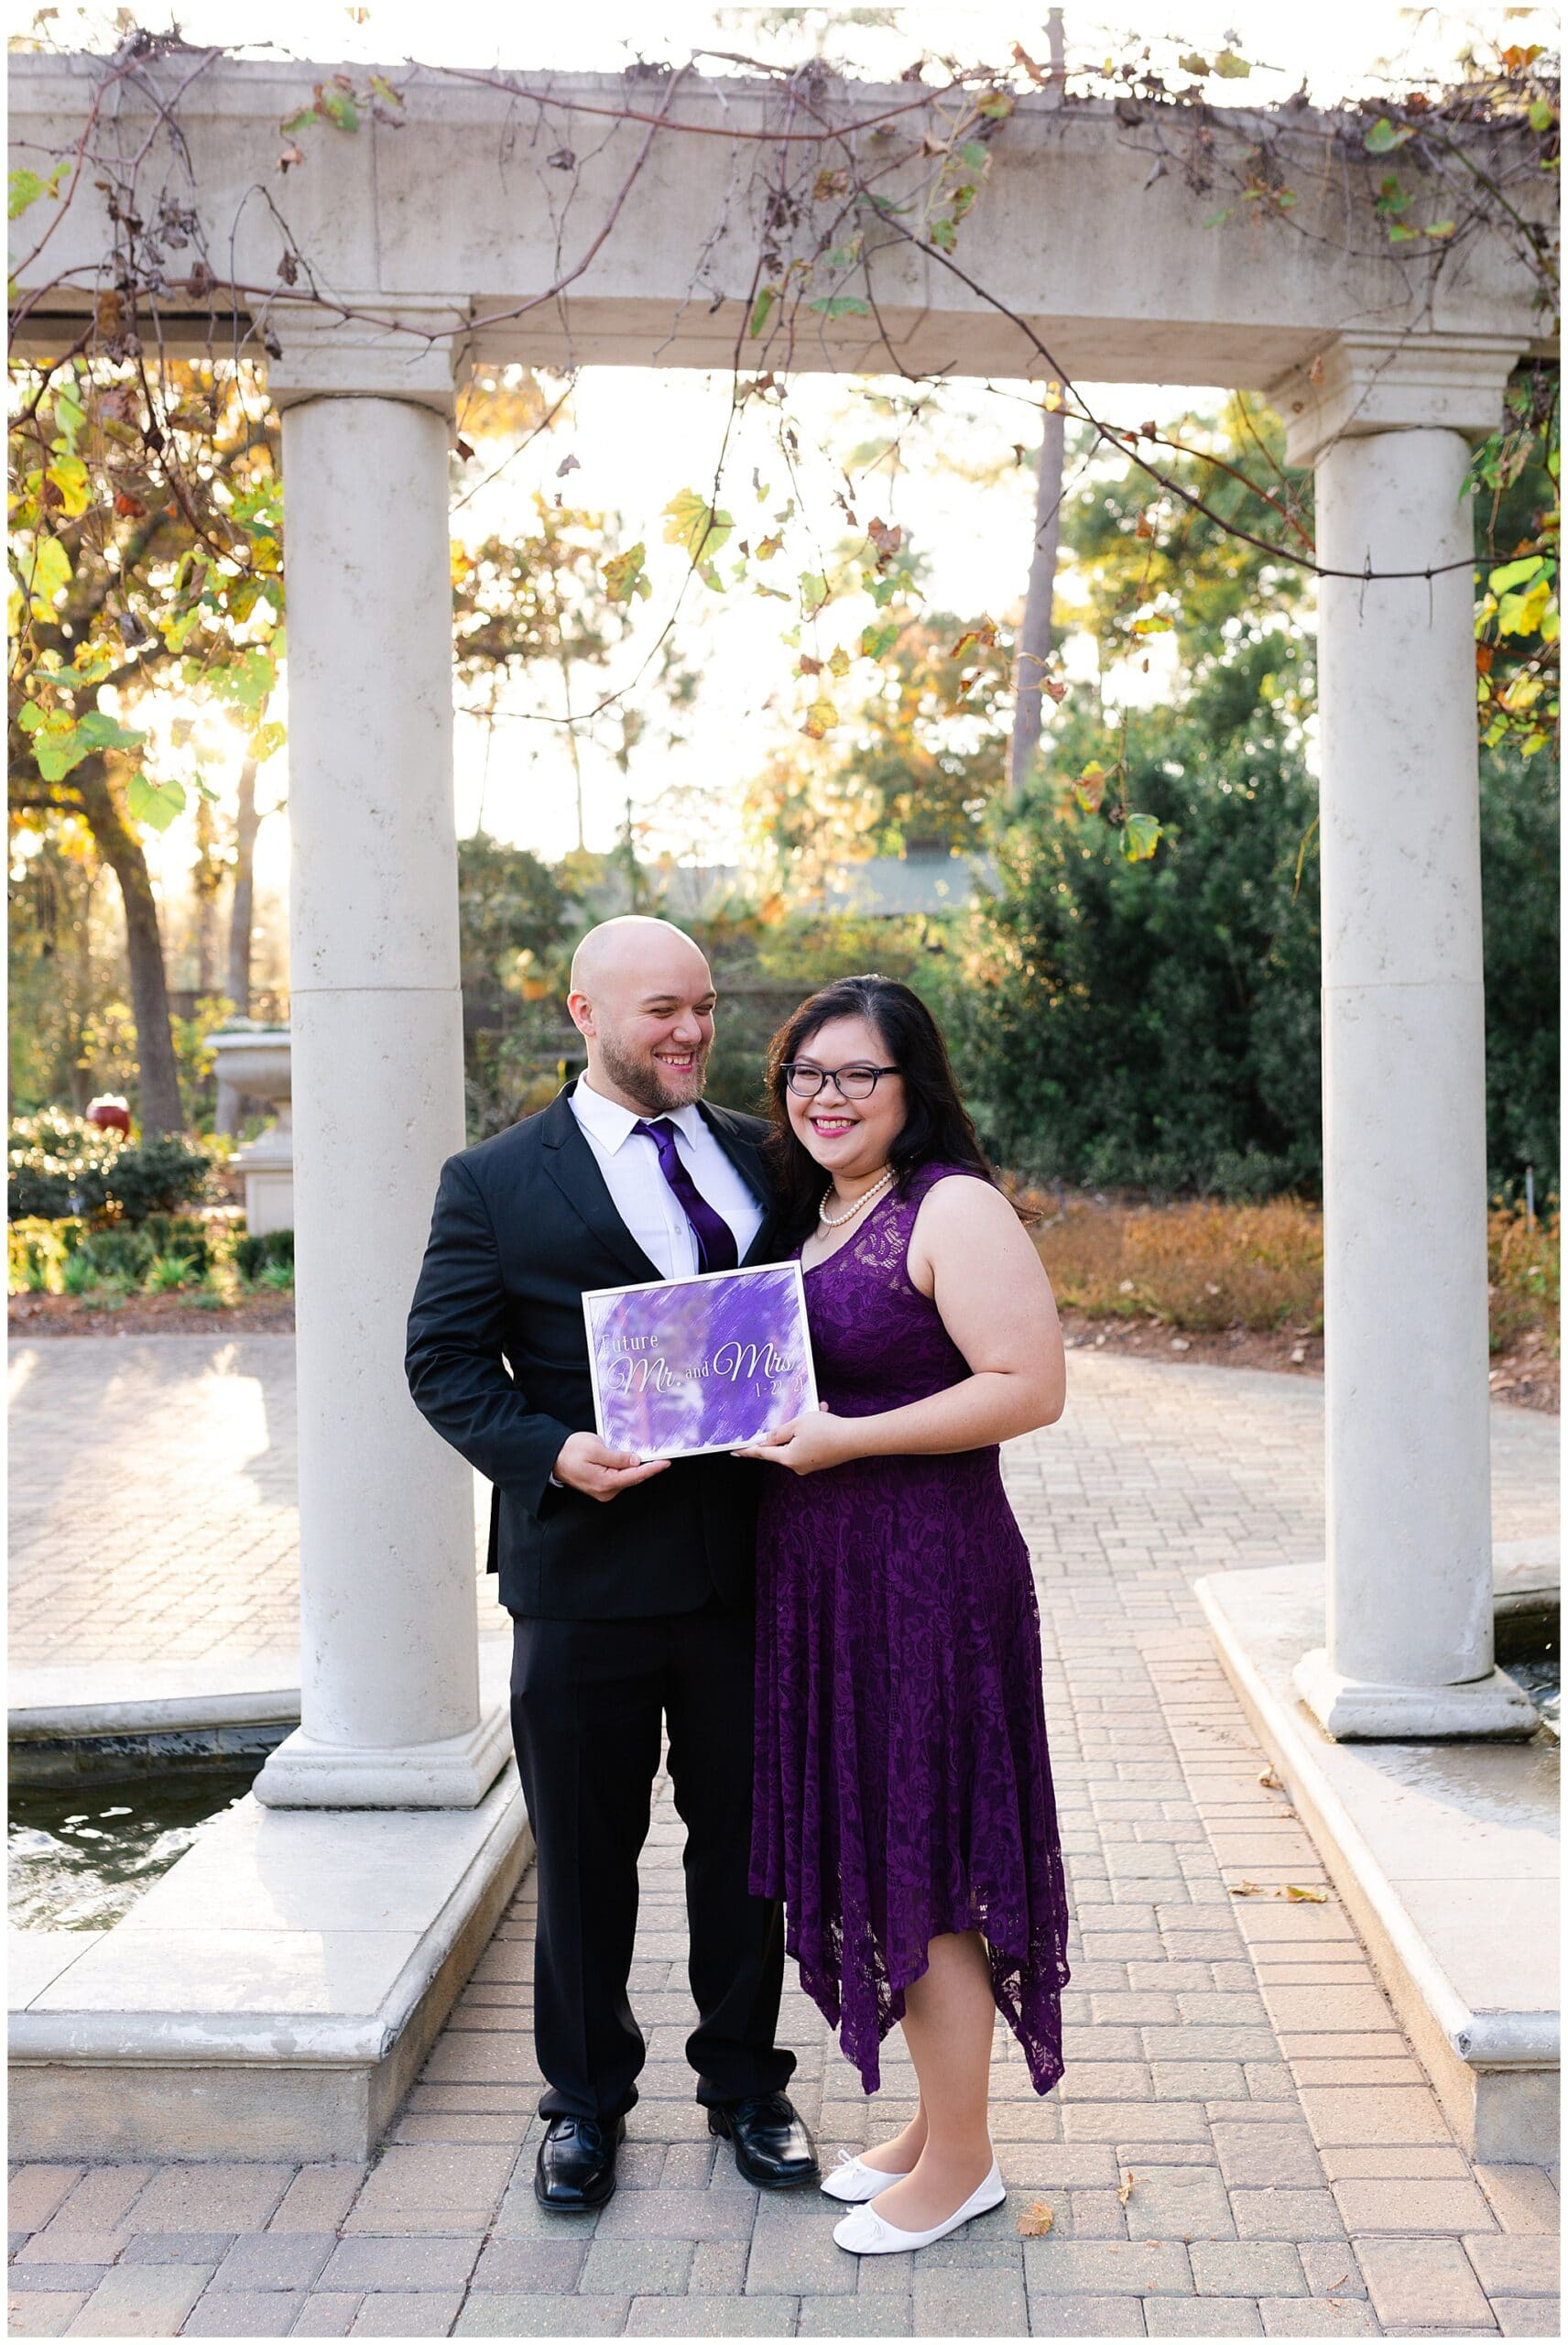 adorable engagement session at Mercer Botanic Gardens in Houston TX photographed by Swish and Click Photography